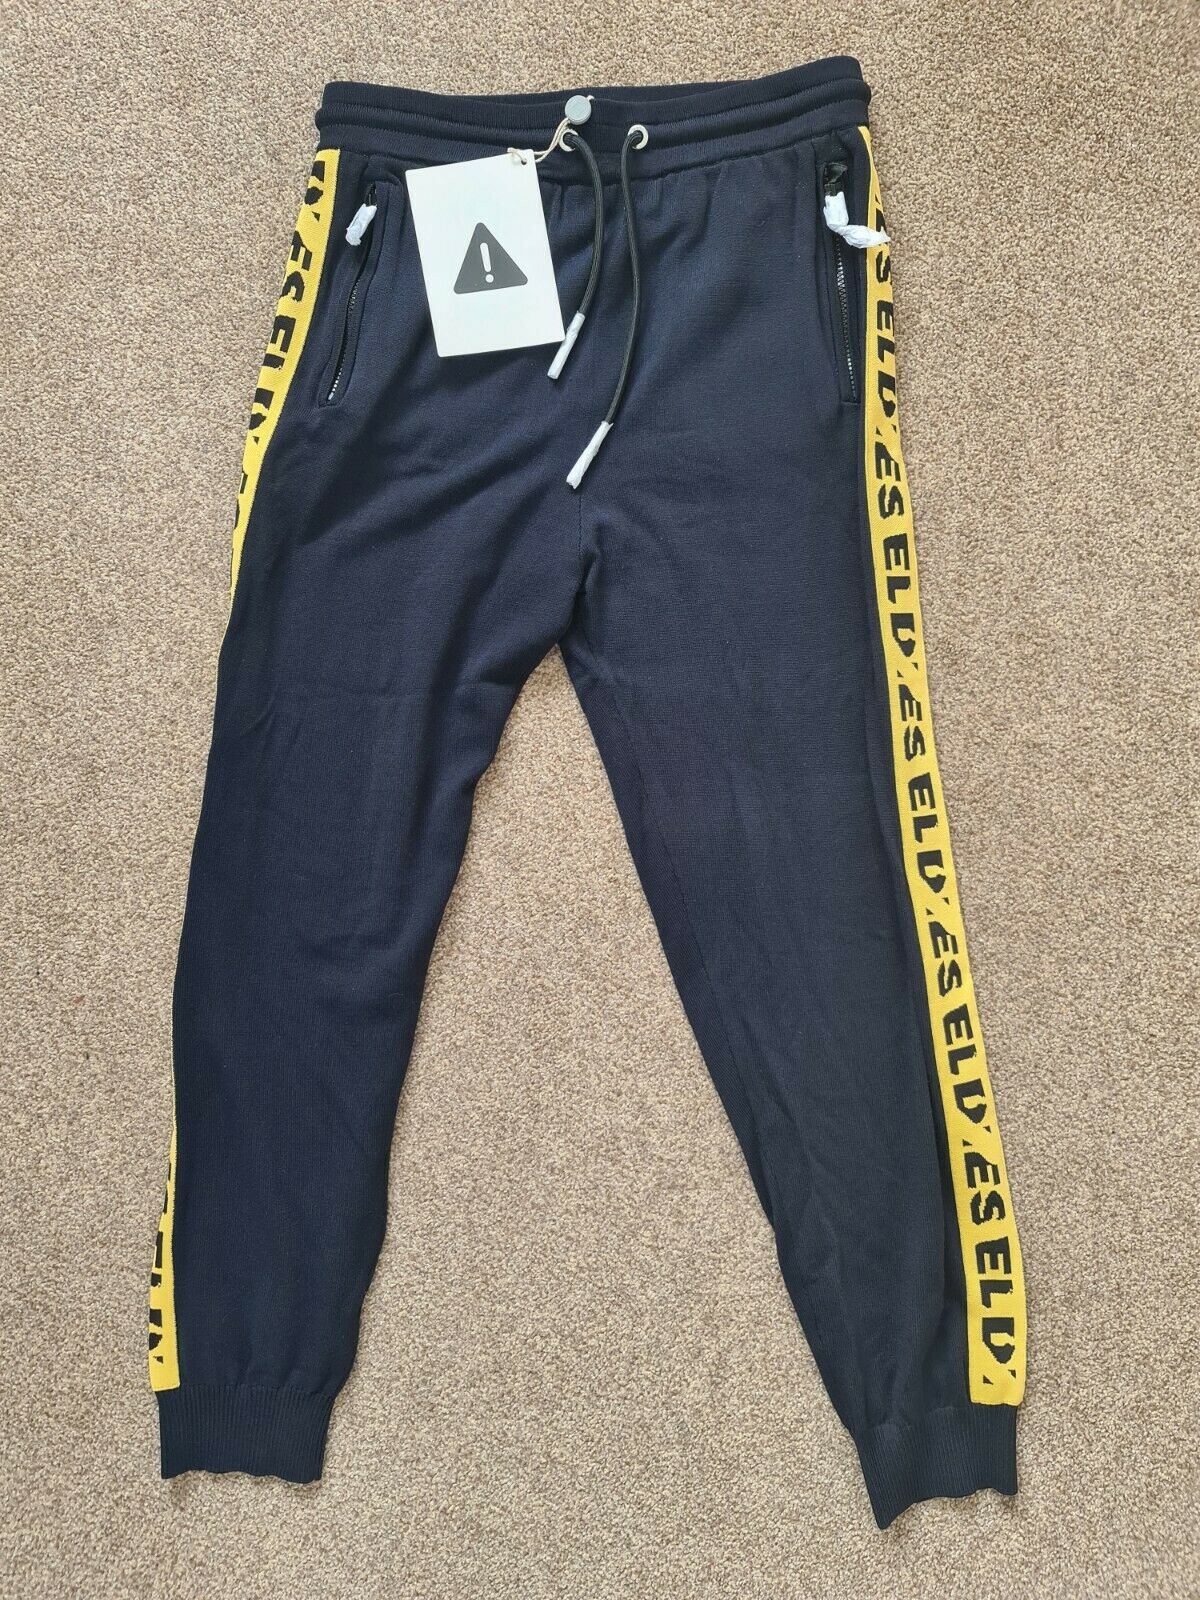 Diesel Mens Navy & Yellow Tracksuit Bottoms / Joggers - Size Medium -New w/ Tags